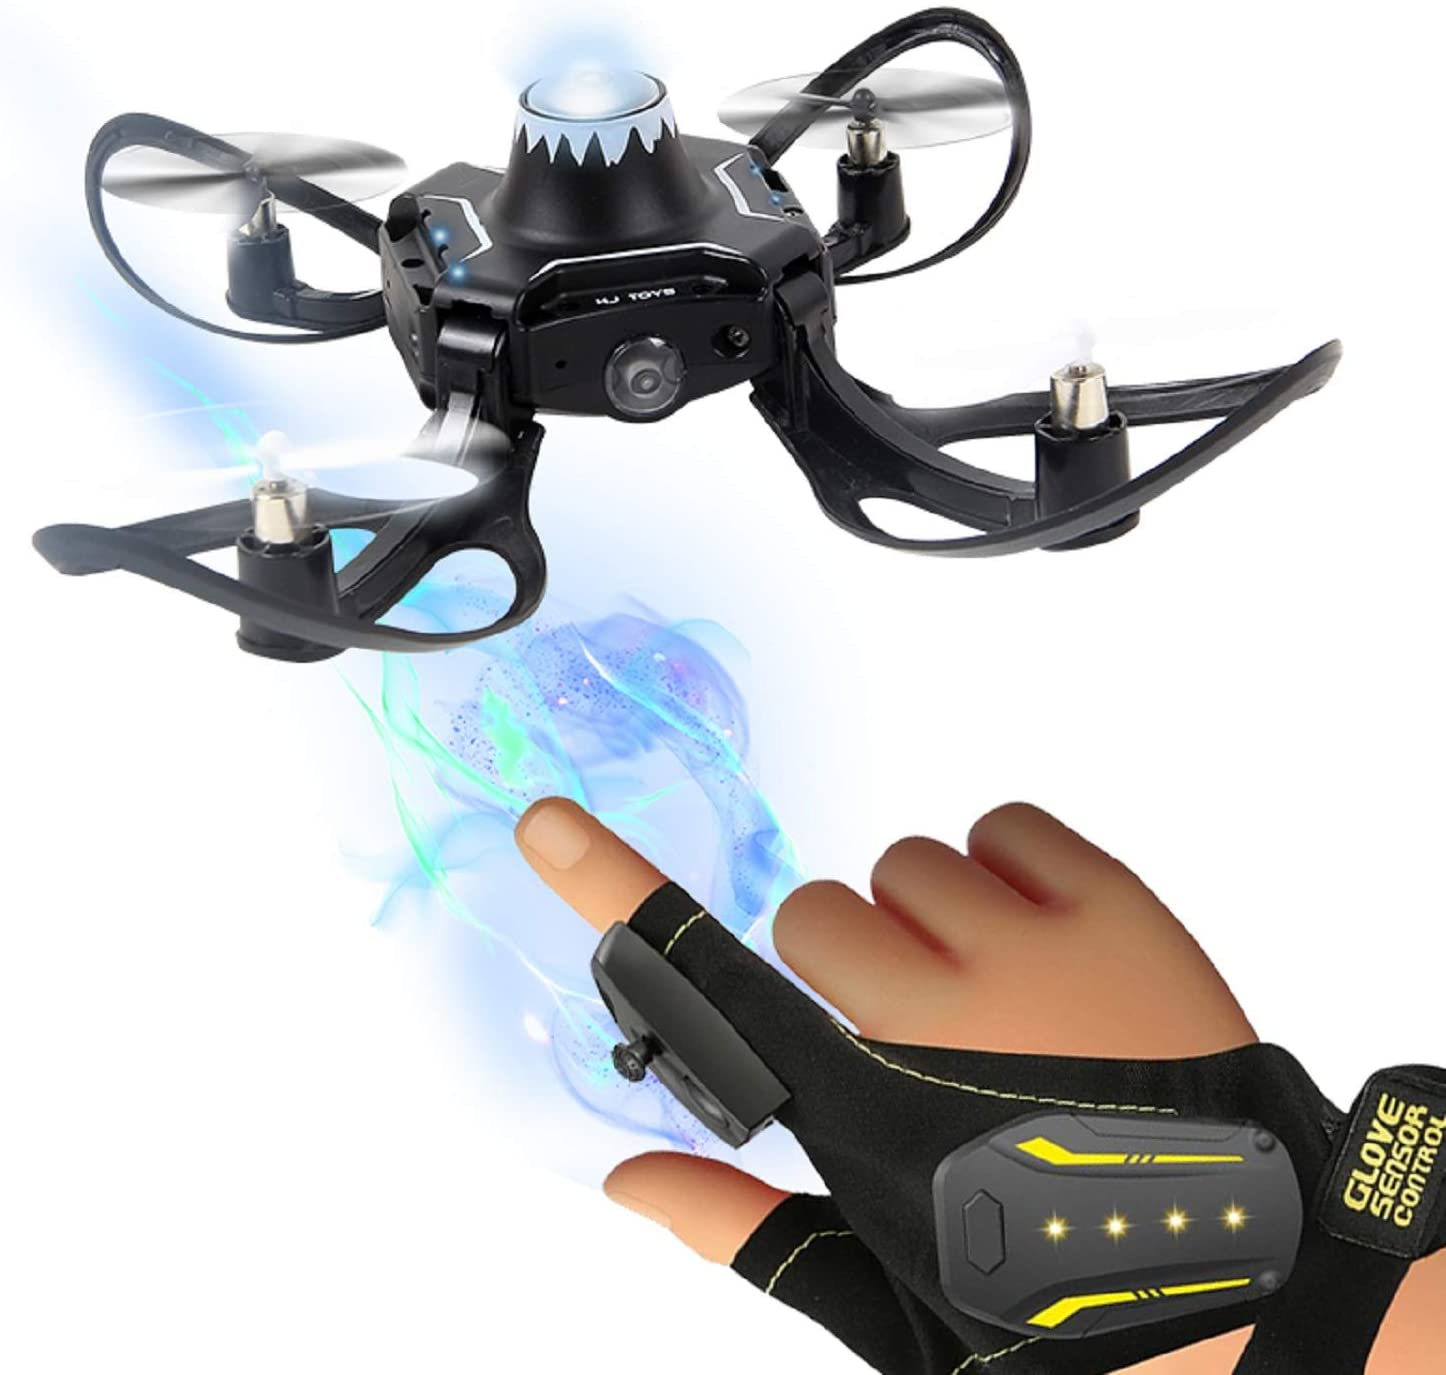 TongLi HJ835 Hand Sensor Foldable Quadcopter